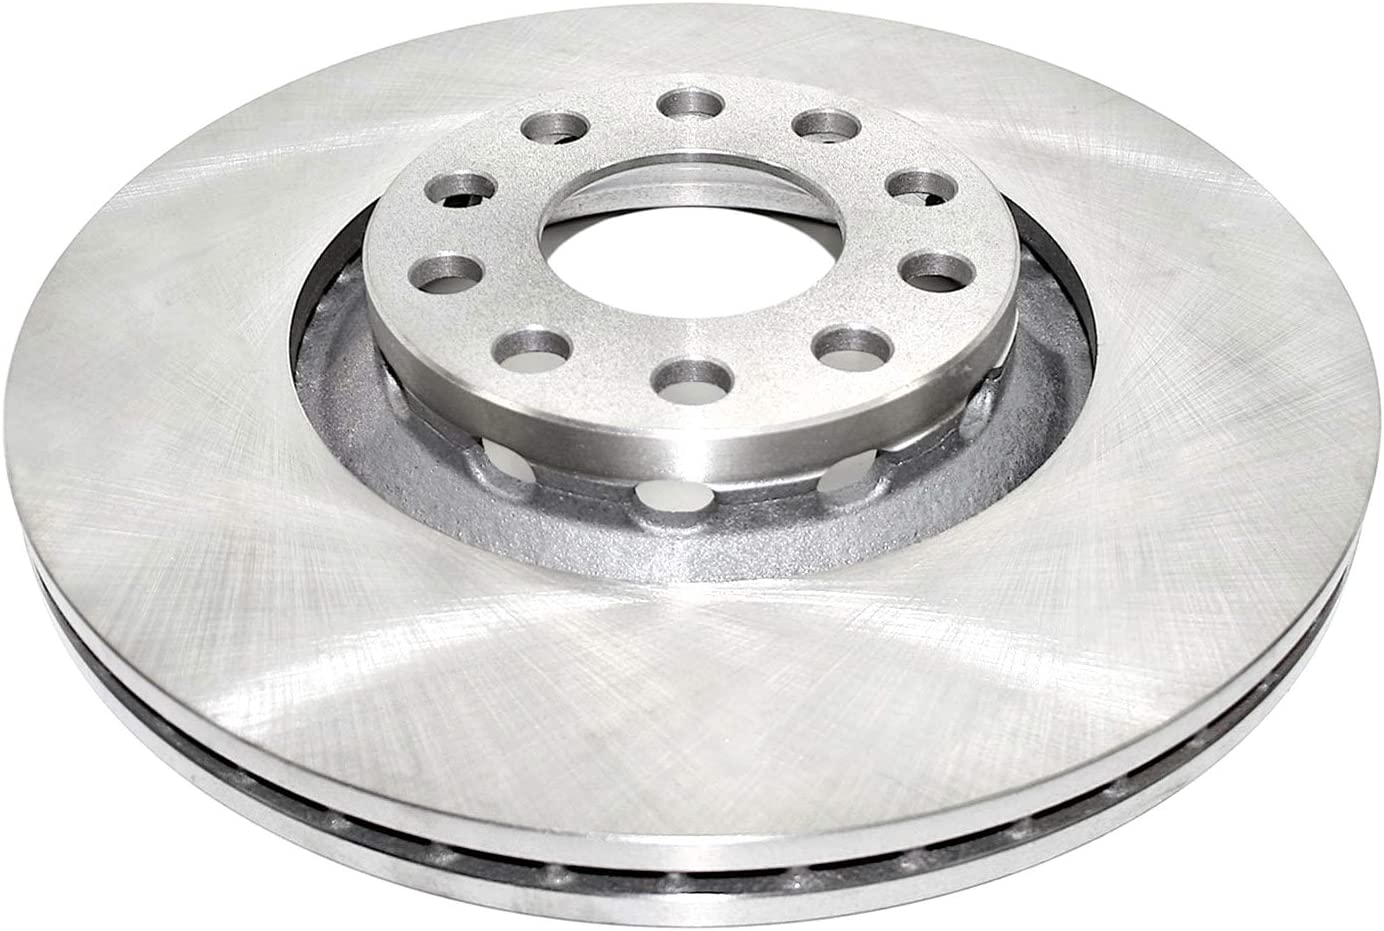 Max 43% OFF DuraGo BR34215 Front Vented New Orleans Mall Rotor Brake Disc